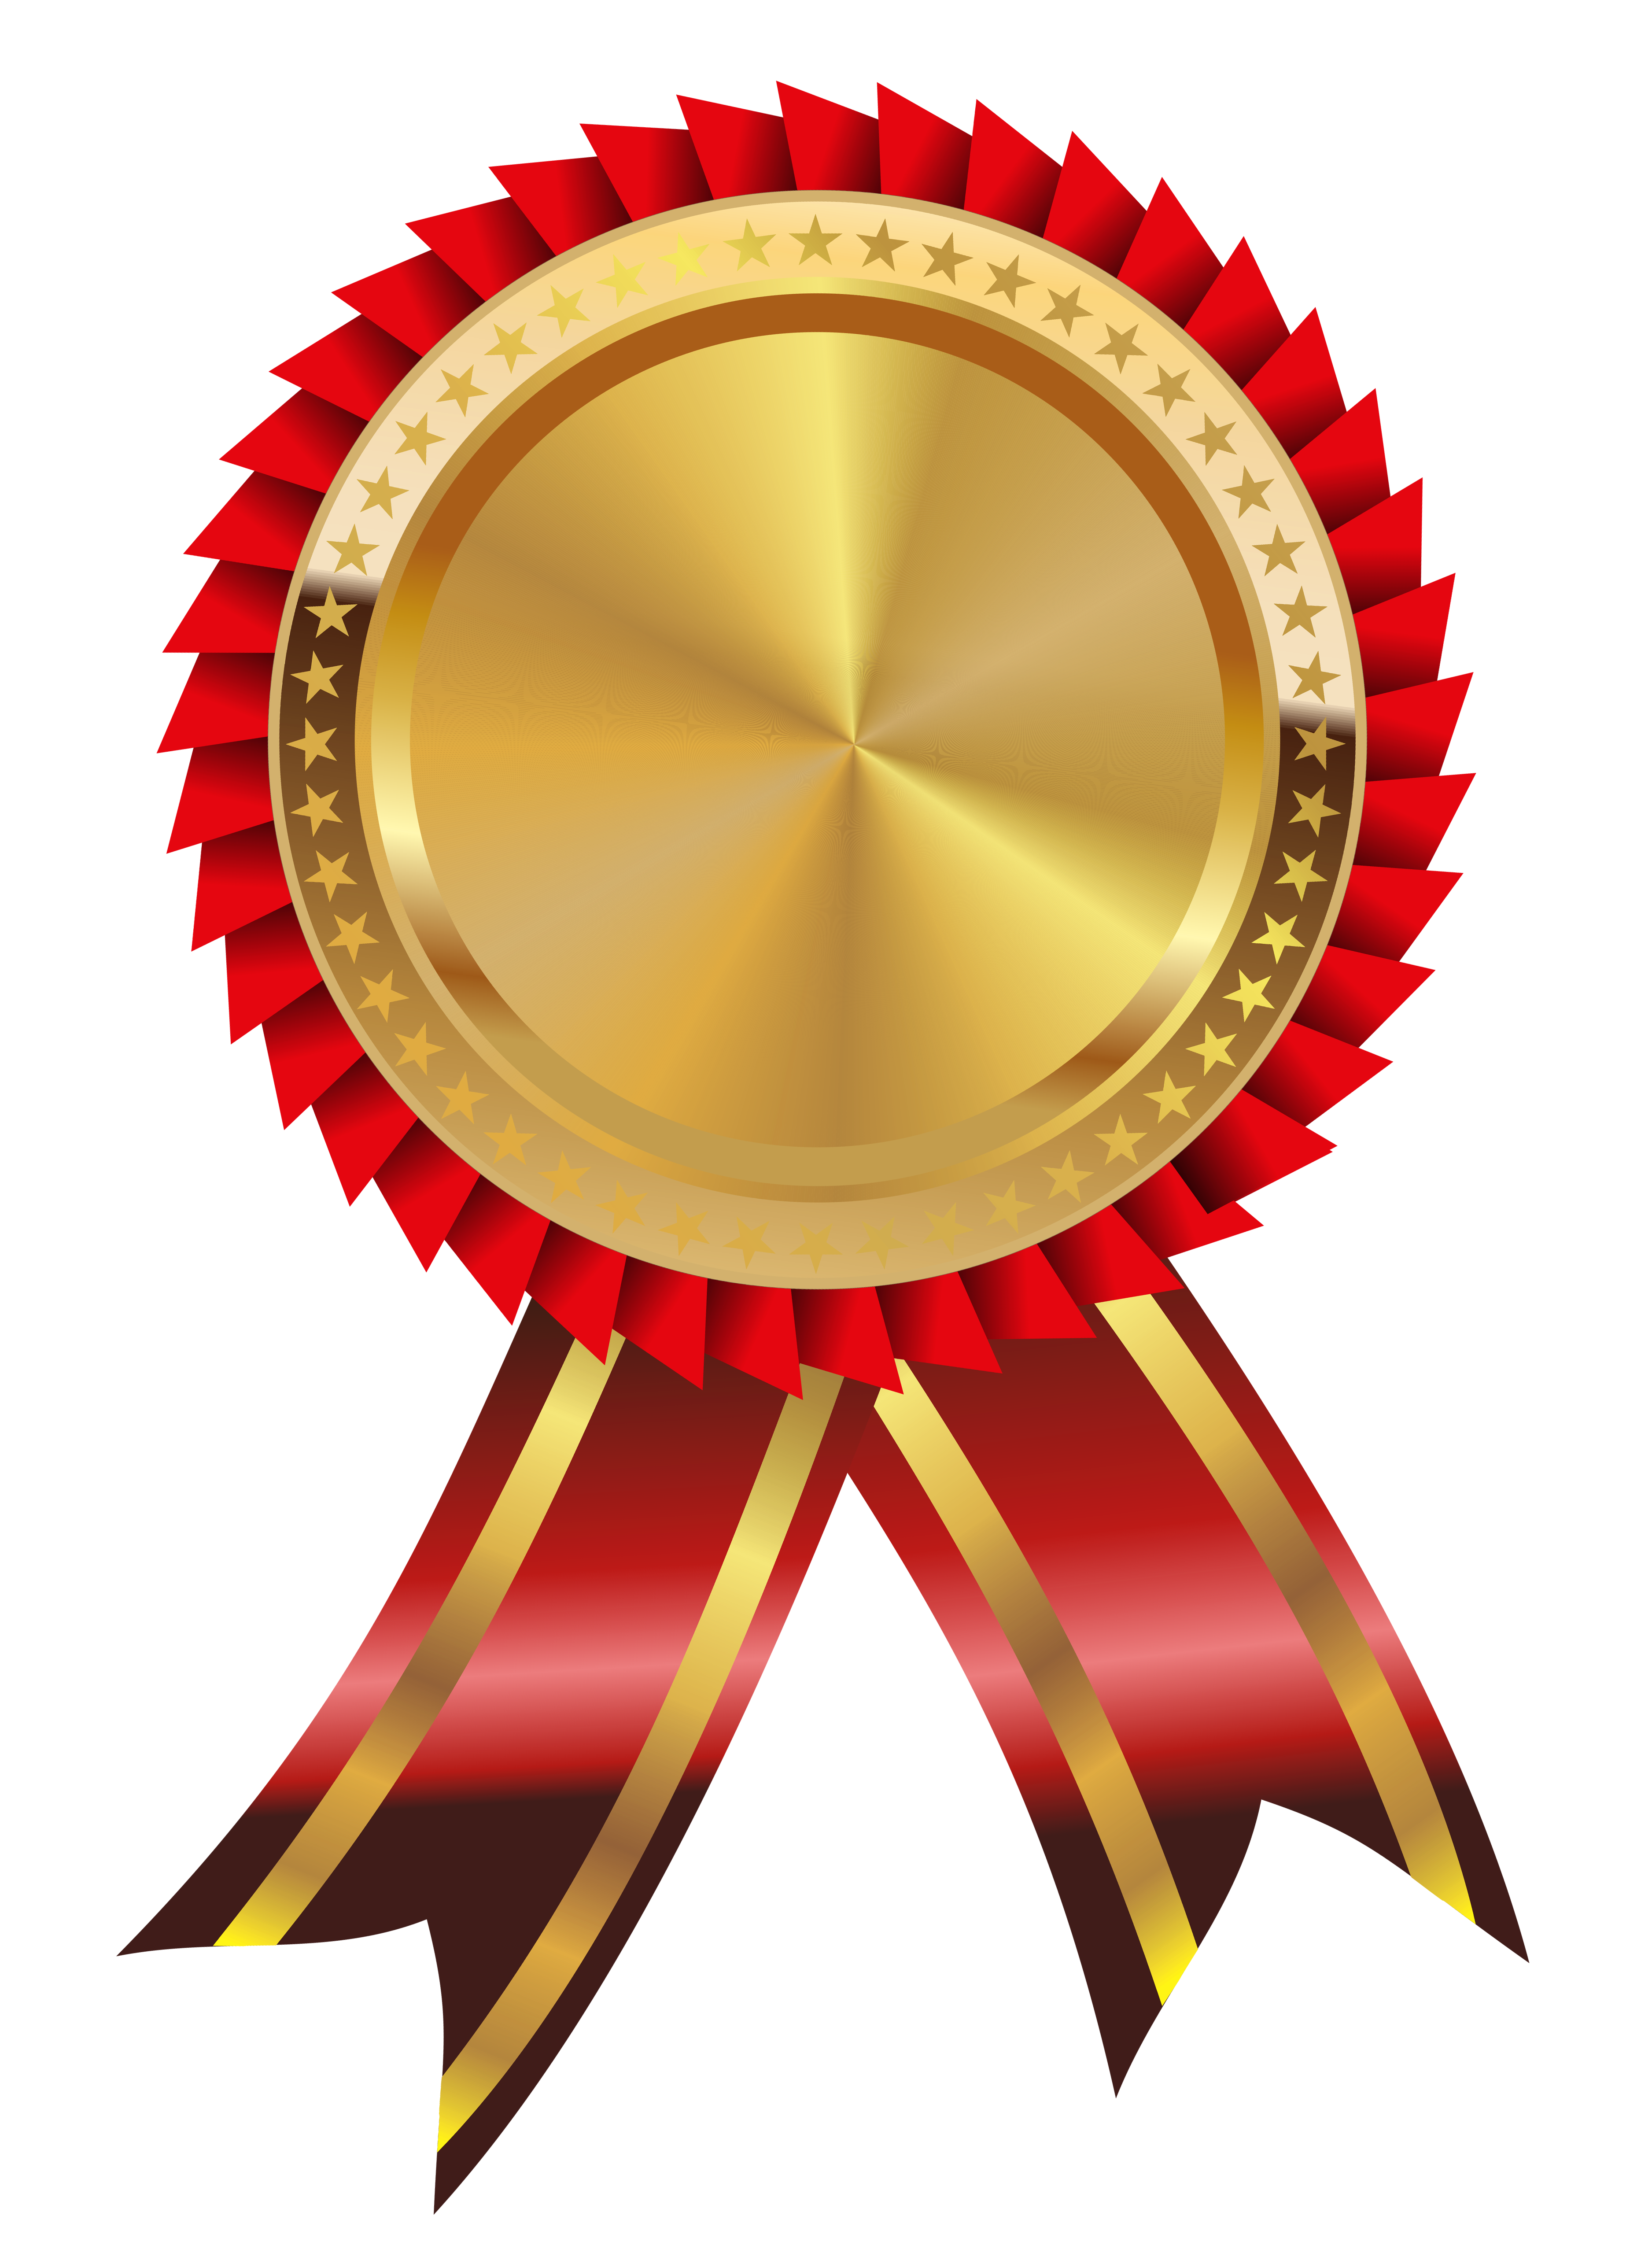 Gold and Red Medal PNG Clipart Image.